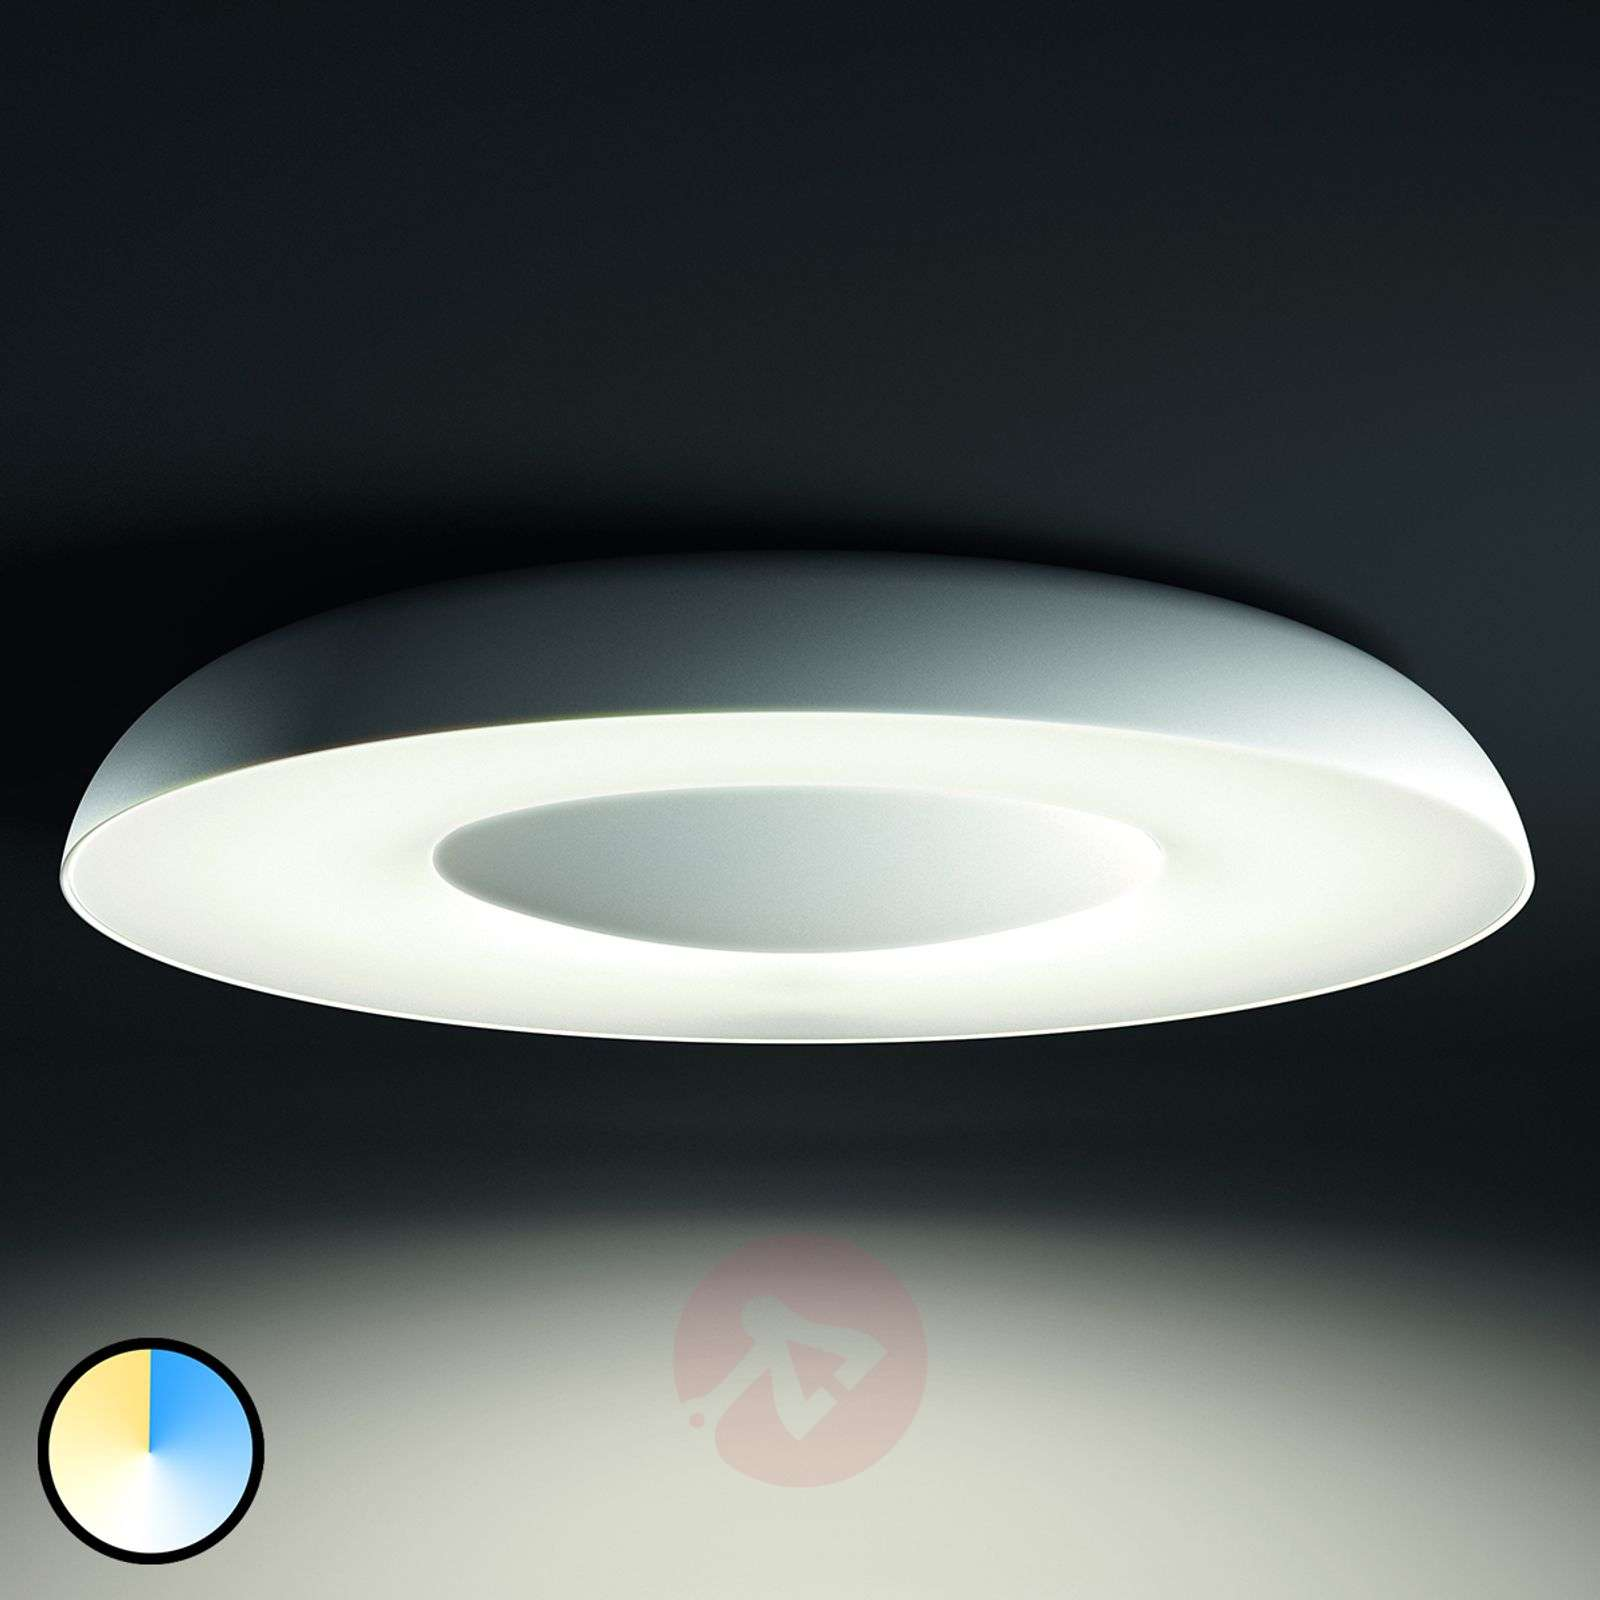 philips hue led ceiling light still in white. Black Bedroom Furniture Sets. Home Design Ideas